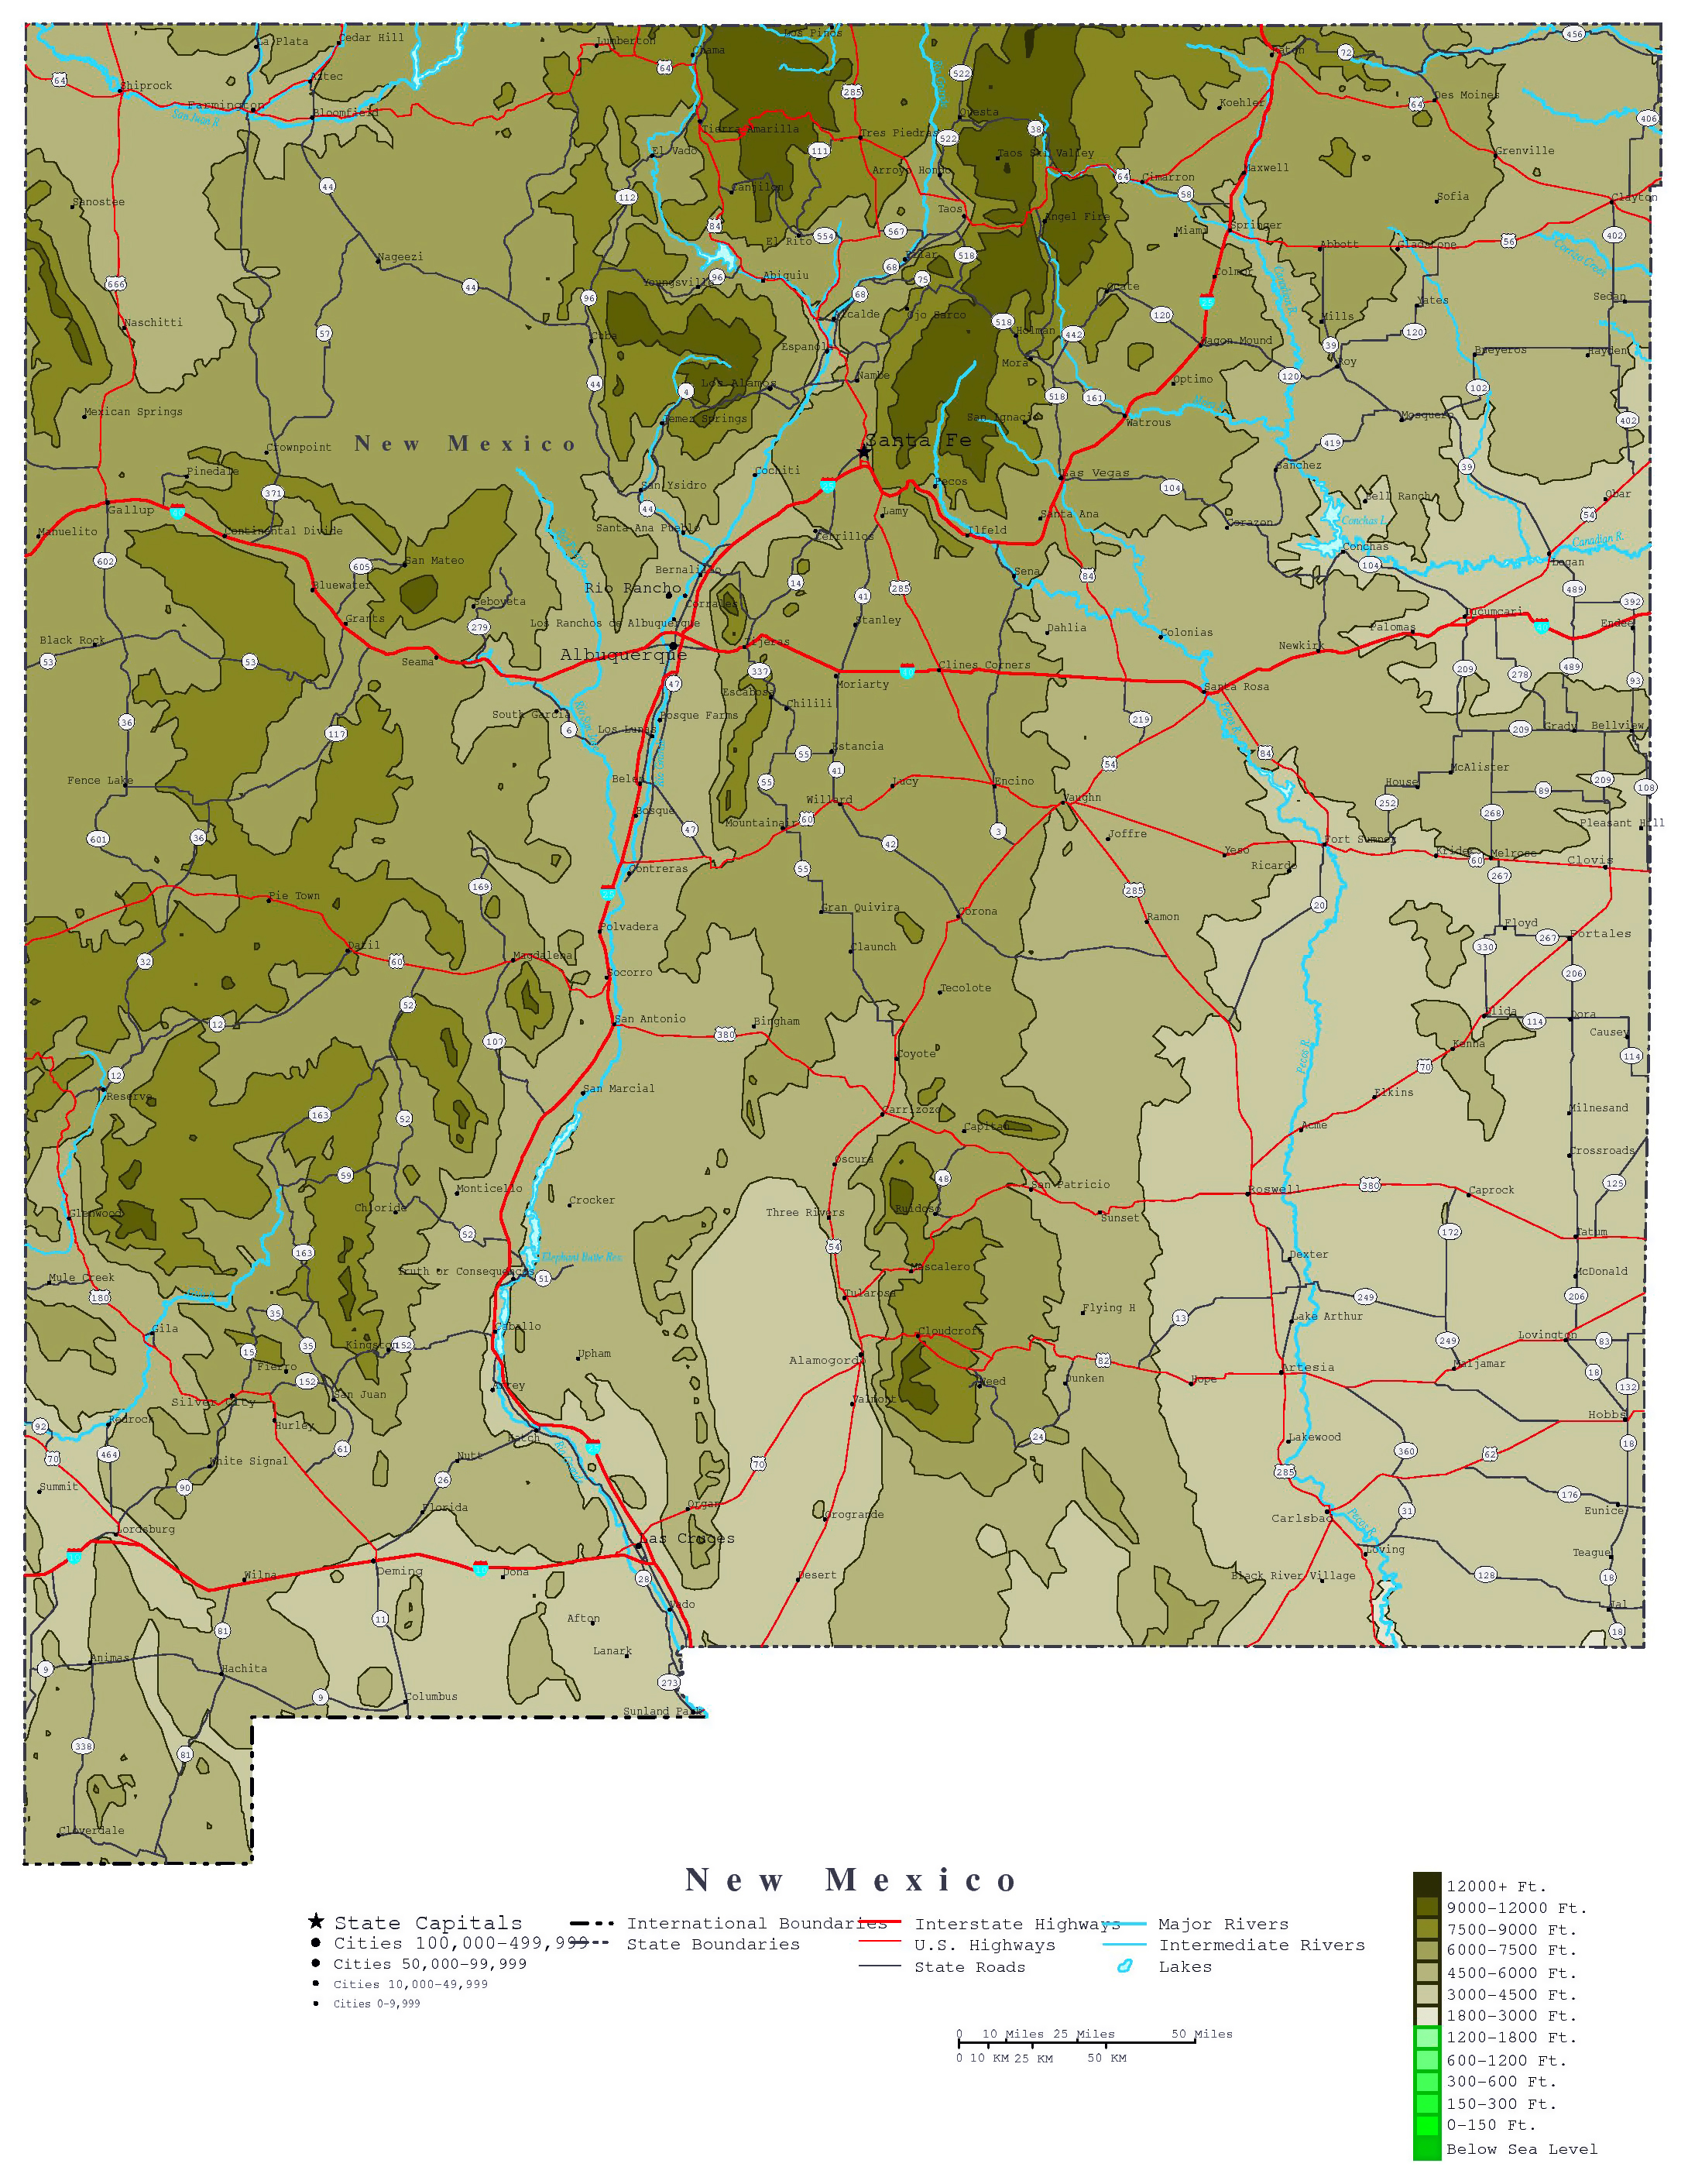 Large Detailed Elevation Map Of New Mexico State With Roads - New mexico elevation map